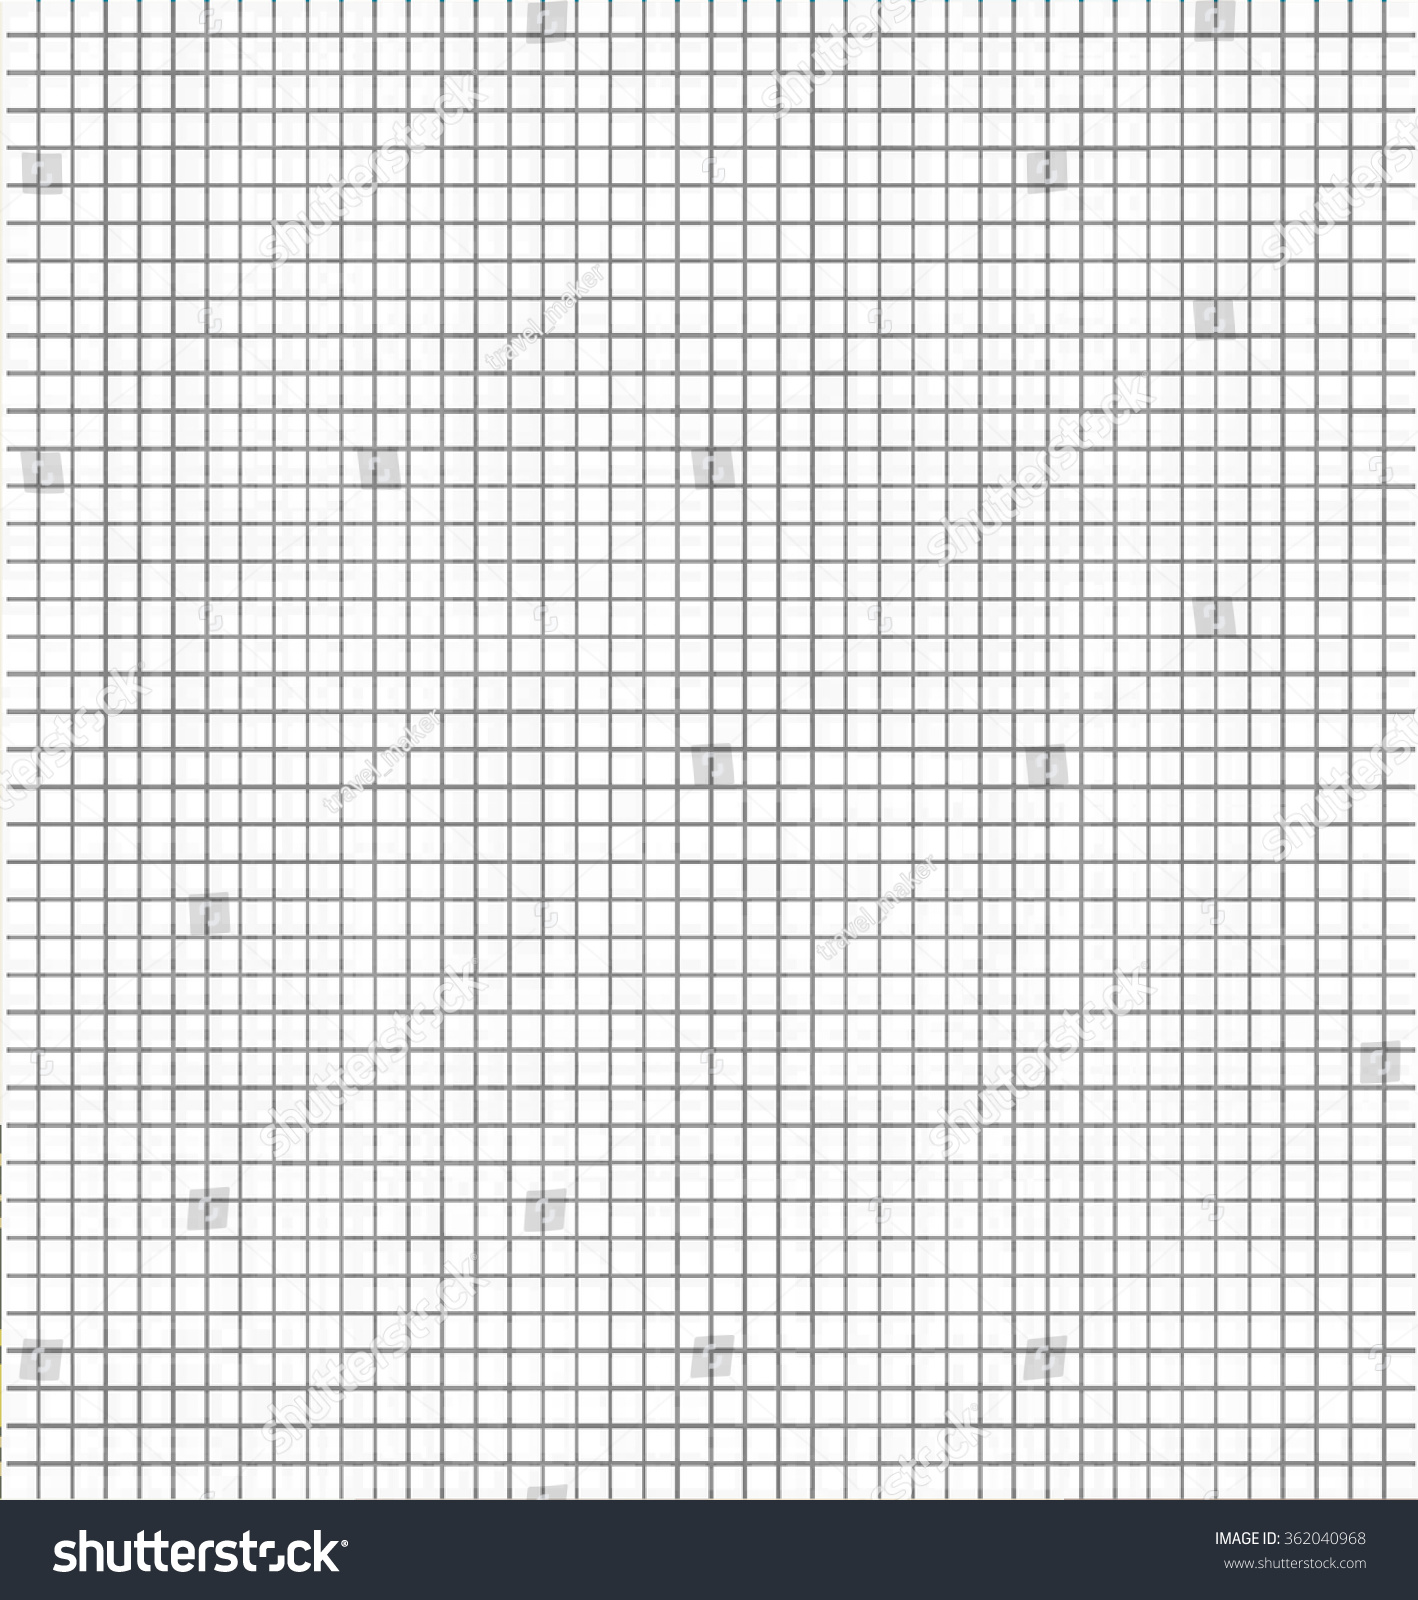 Technical Grid Background Square Graphing Scale Stock